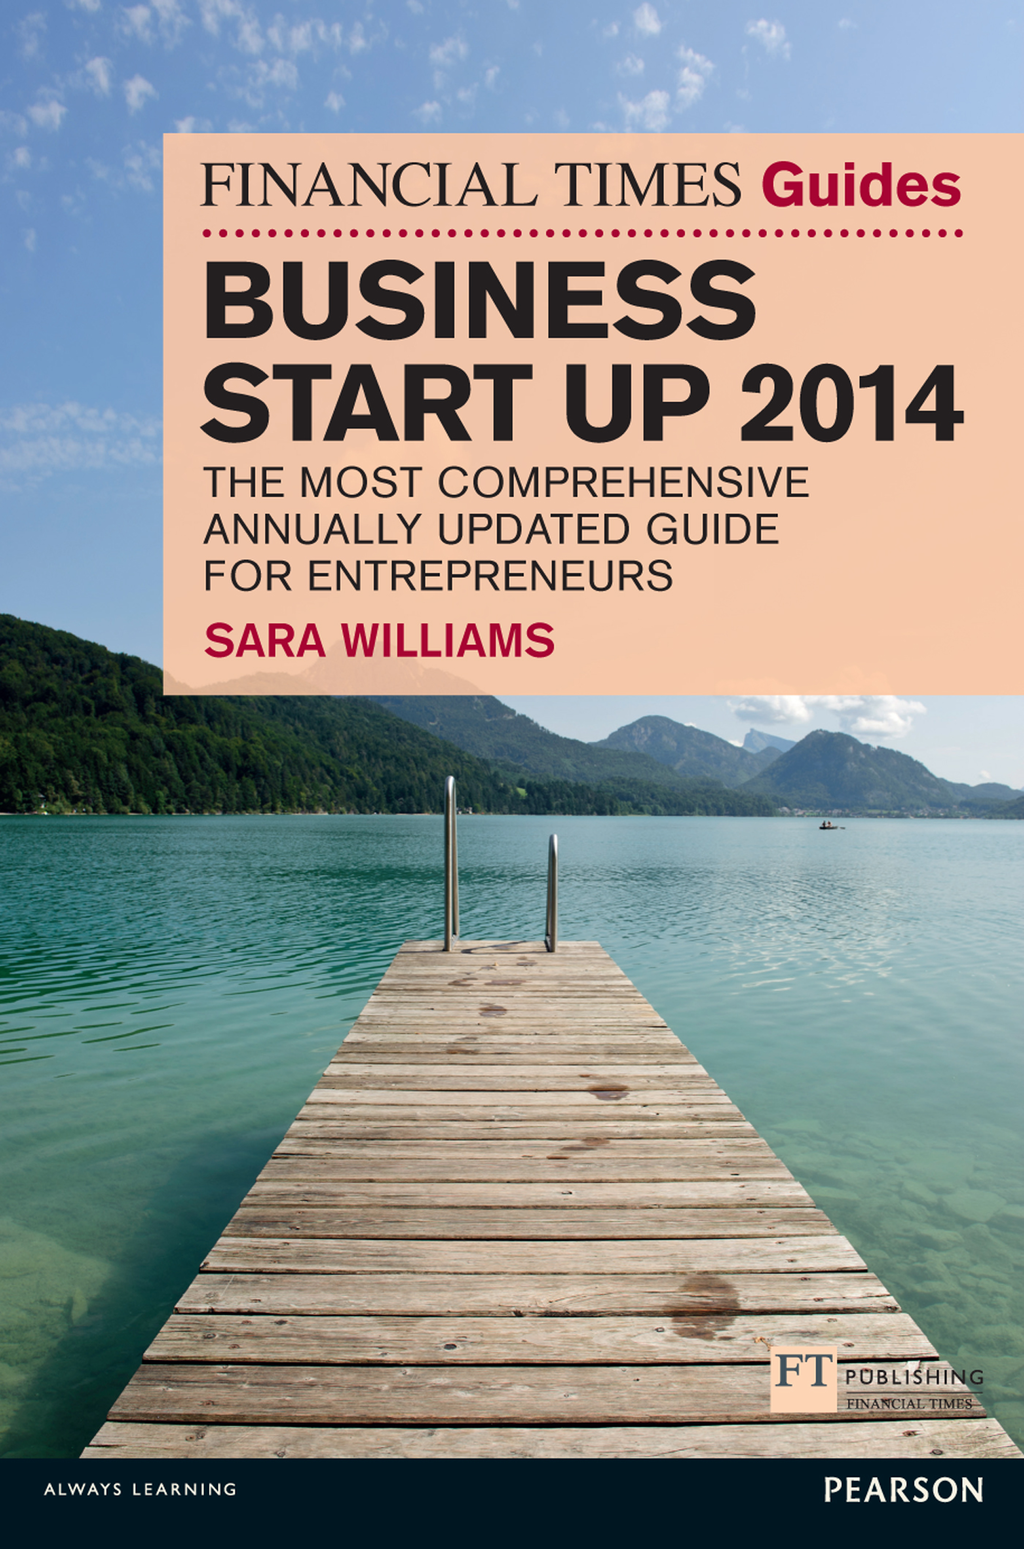 The Financial Times Guide to Business Start Up 2014 The Most Comprehensive Annually Updated Guide for Entrepreneurs